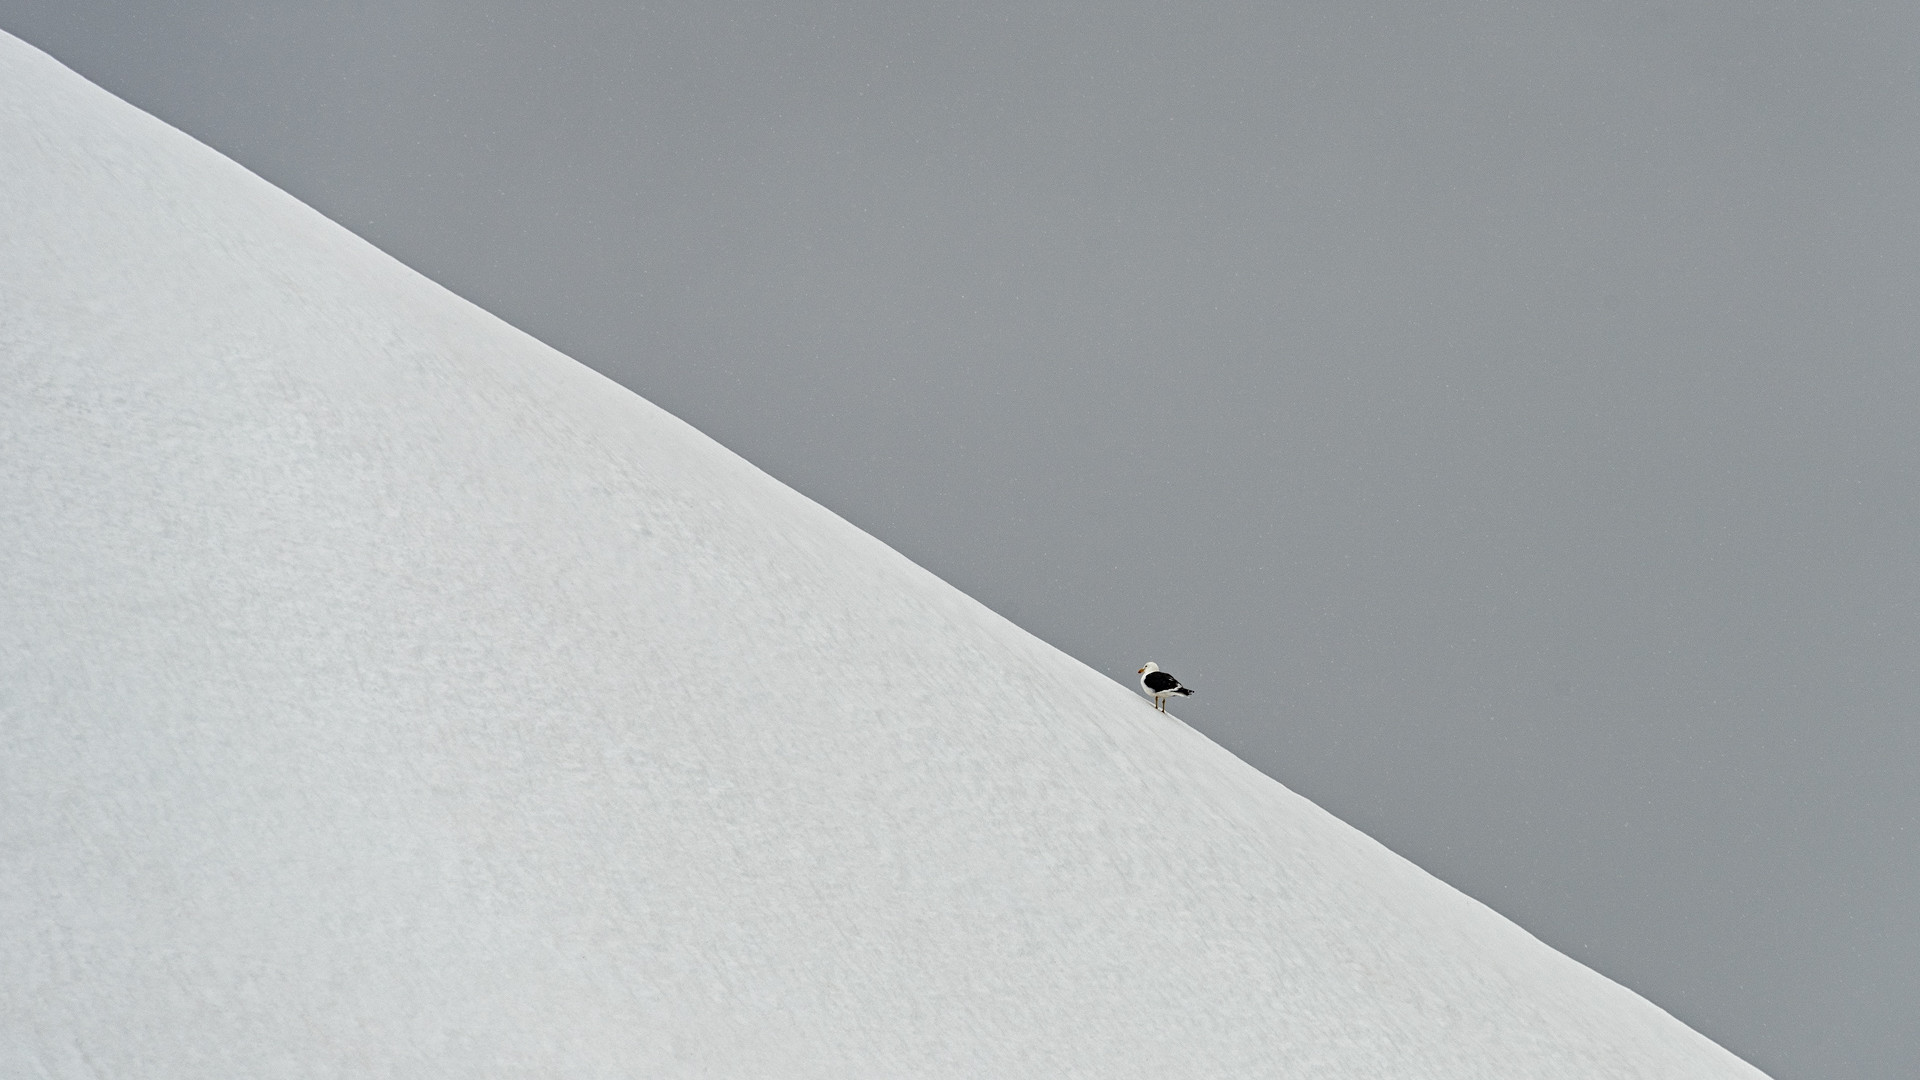 Asbtract White Snow line with Bird